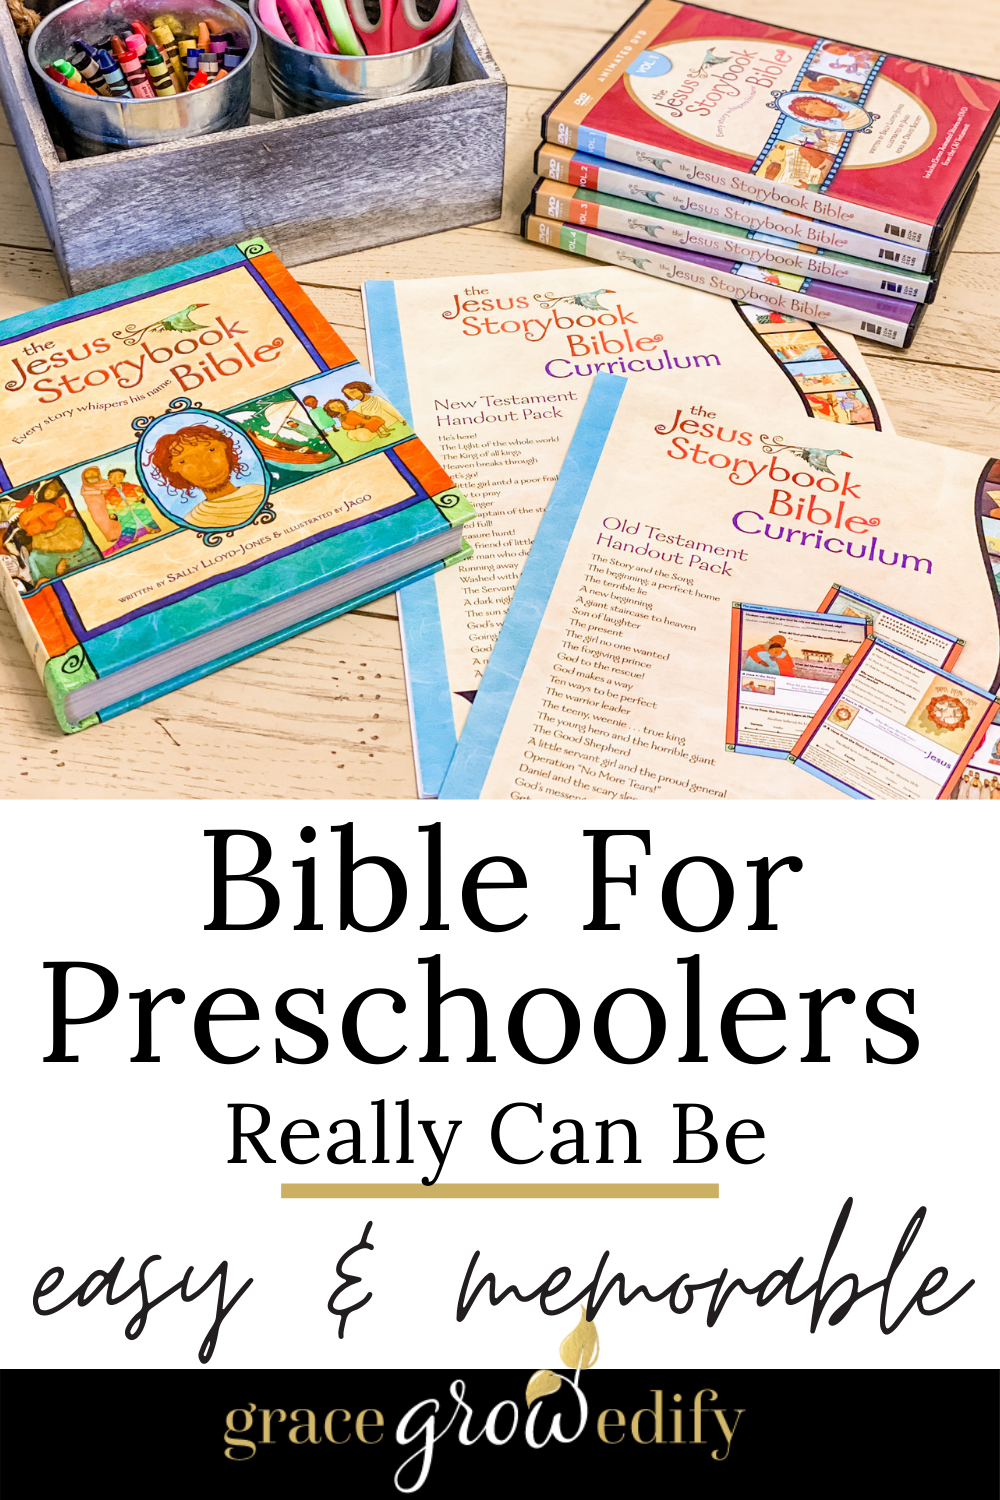 Are you overcomplicating Bible for preschoolers? It doesn't have to be complicated; simplicity is key when introducing the Bible at home. #homeschool #preschool #bibleforkids #biblecurriculum #preschoolbible